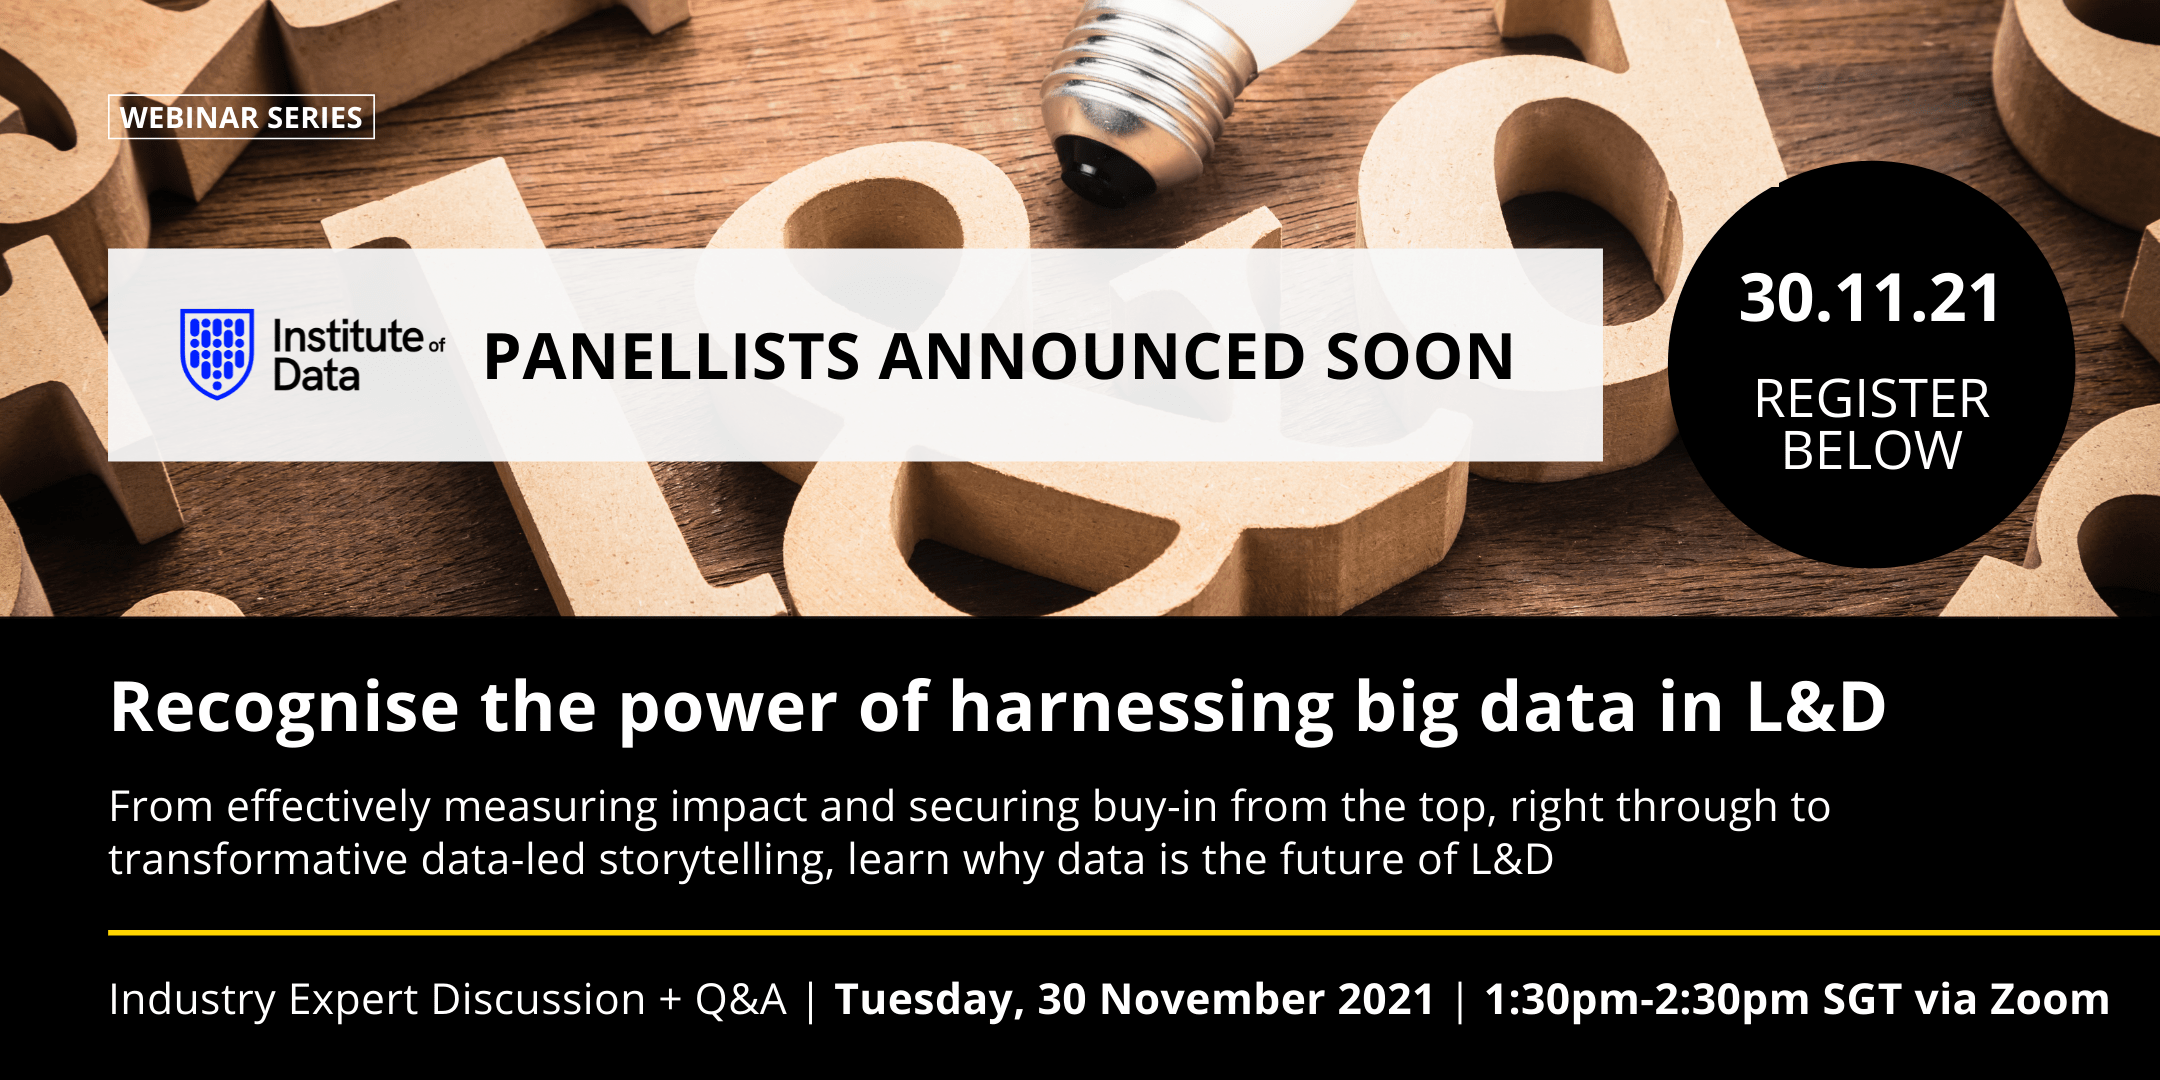 Recognise the power of harnessing big data in L&D SG - 30 November 2021 - Industry webinar